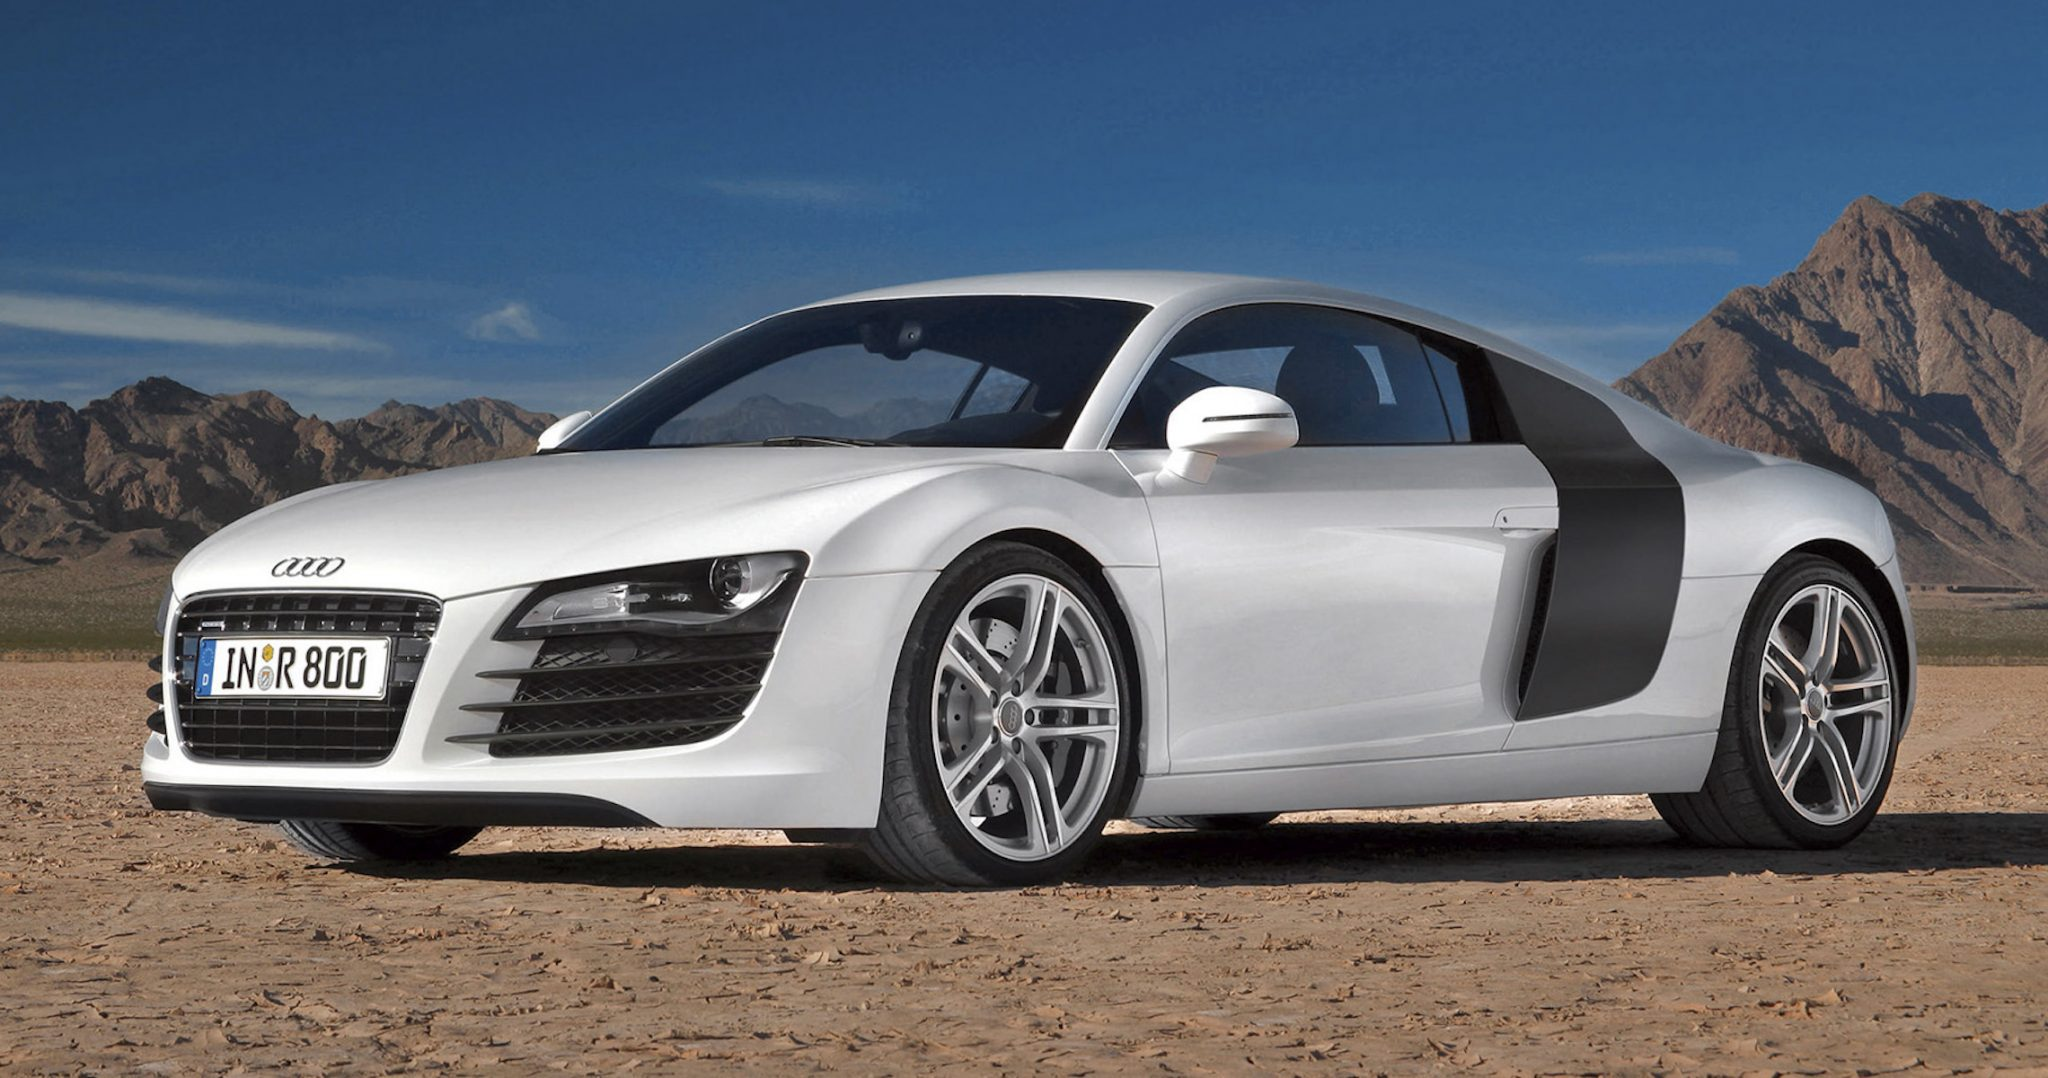 A side view of a white First Gen Audi R8 in a desert